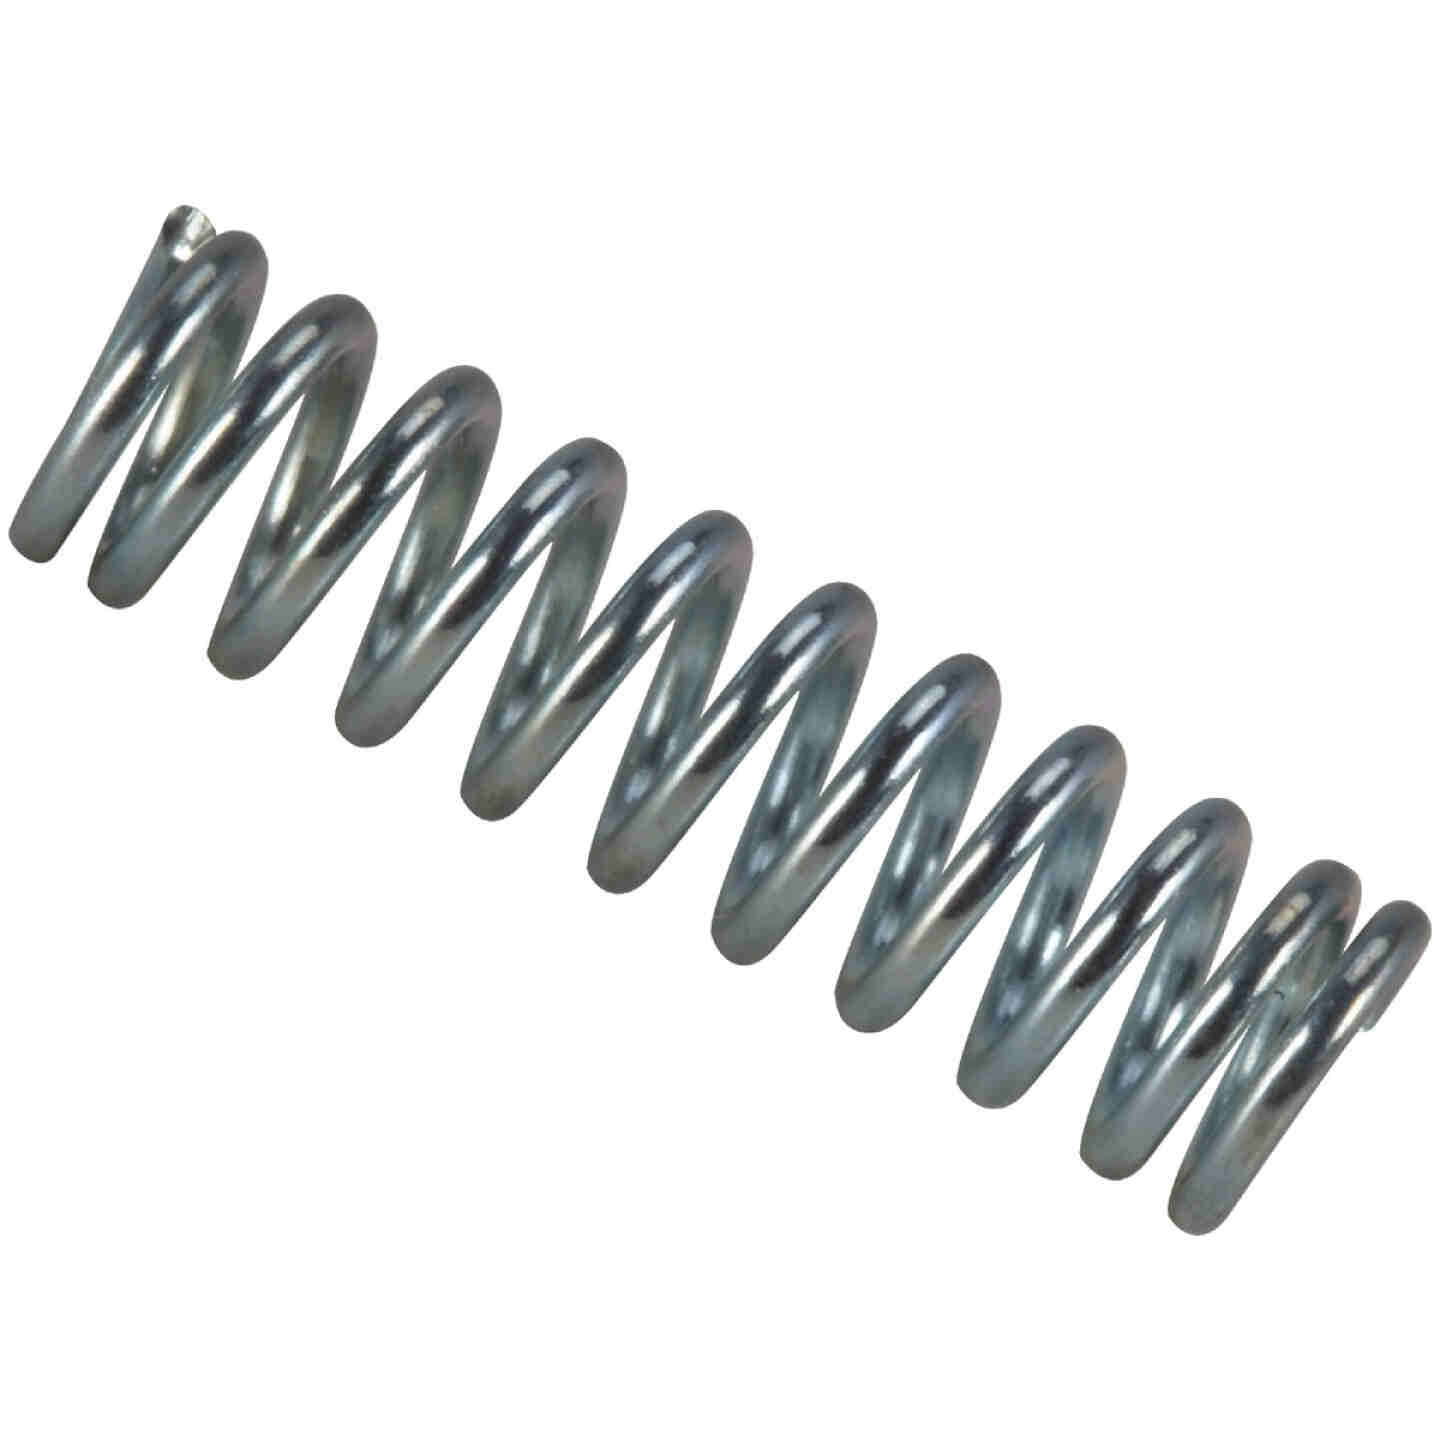 Century Spring 3/4 In. x 3/8 In. Compression Spring (6 Count) Image 1